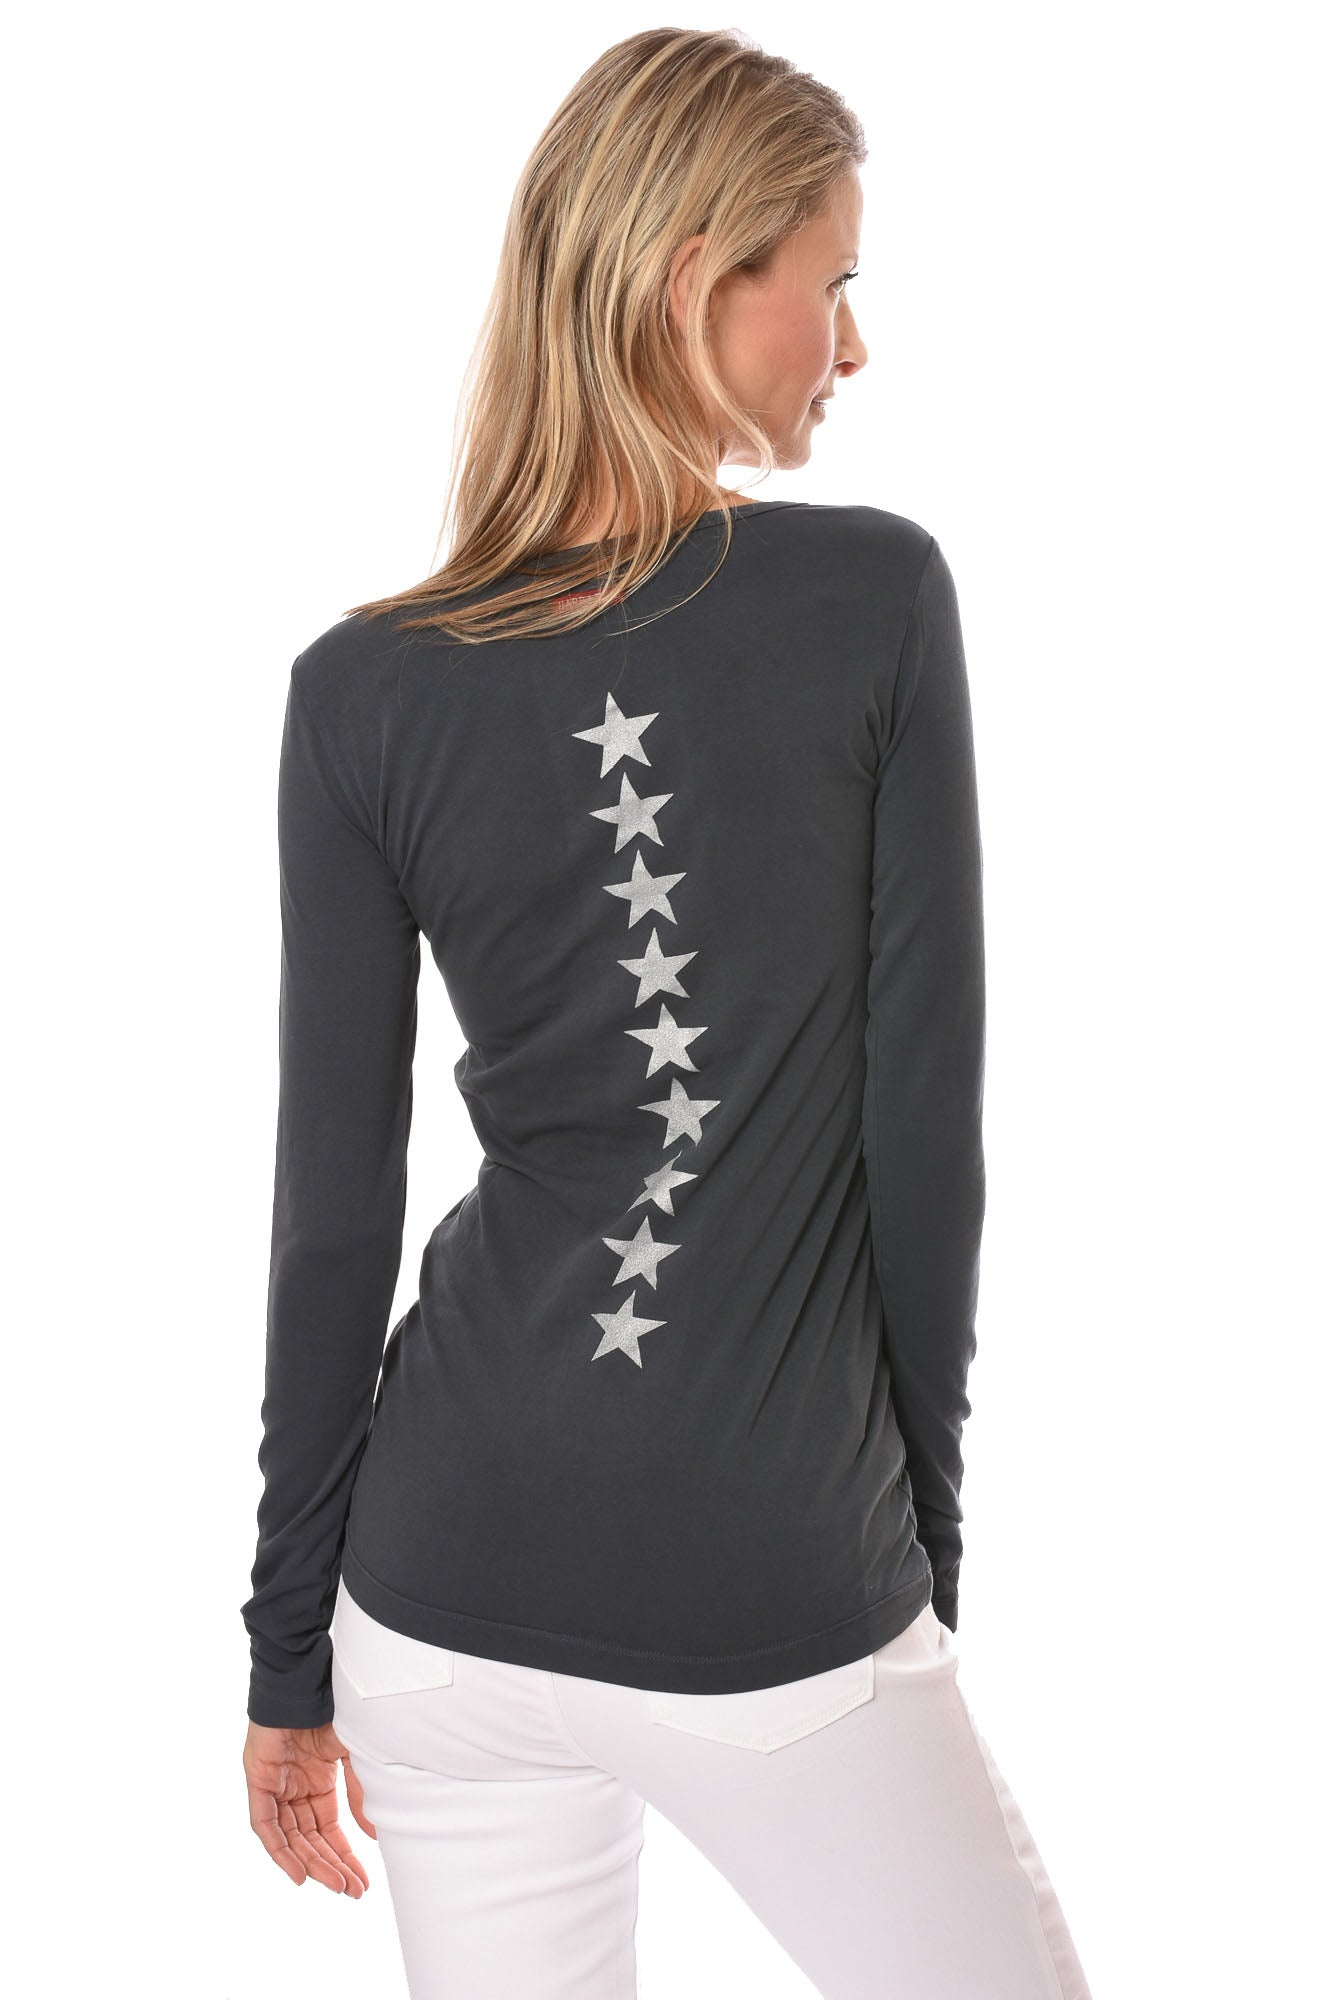 Hard Tail Forever - Supima/Lycra Long Sleeve Scoop Tee w/Silver Stars On Back (SL-69, Onyx w/Silver Stars)